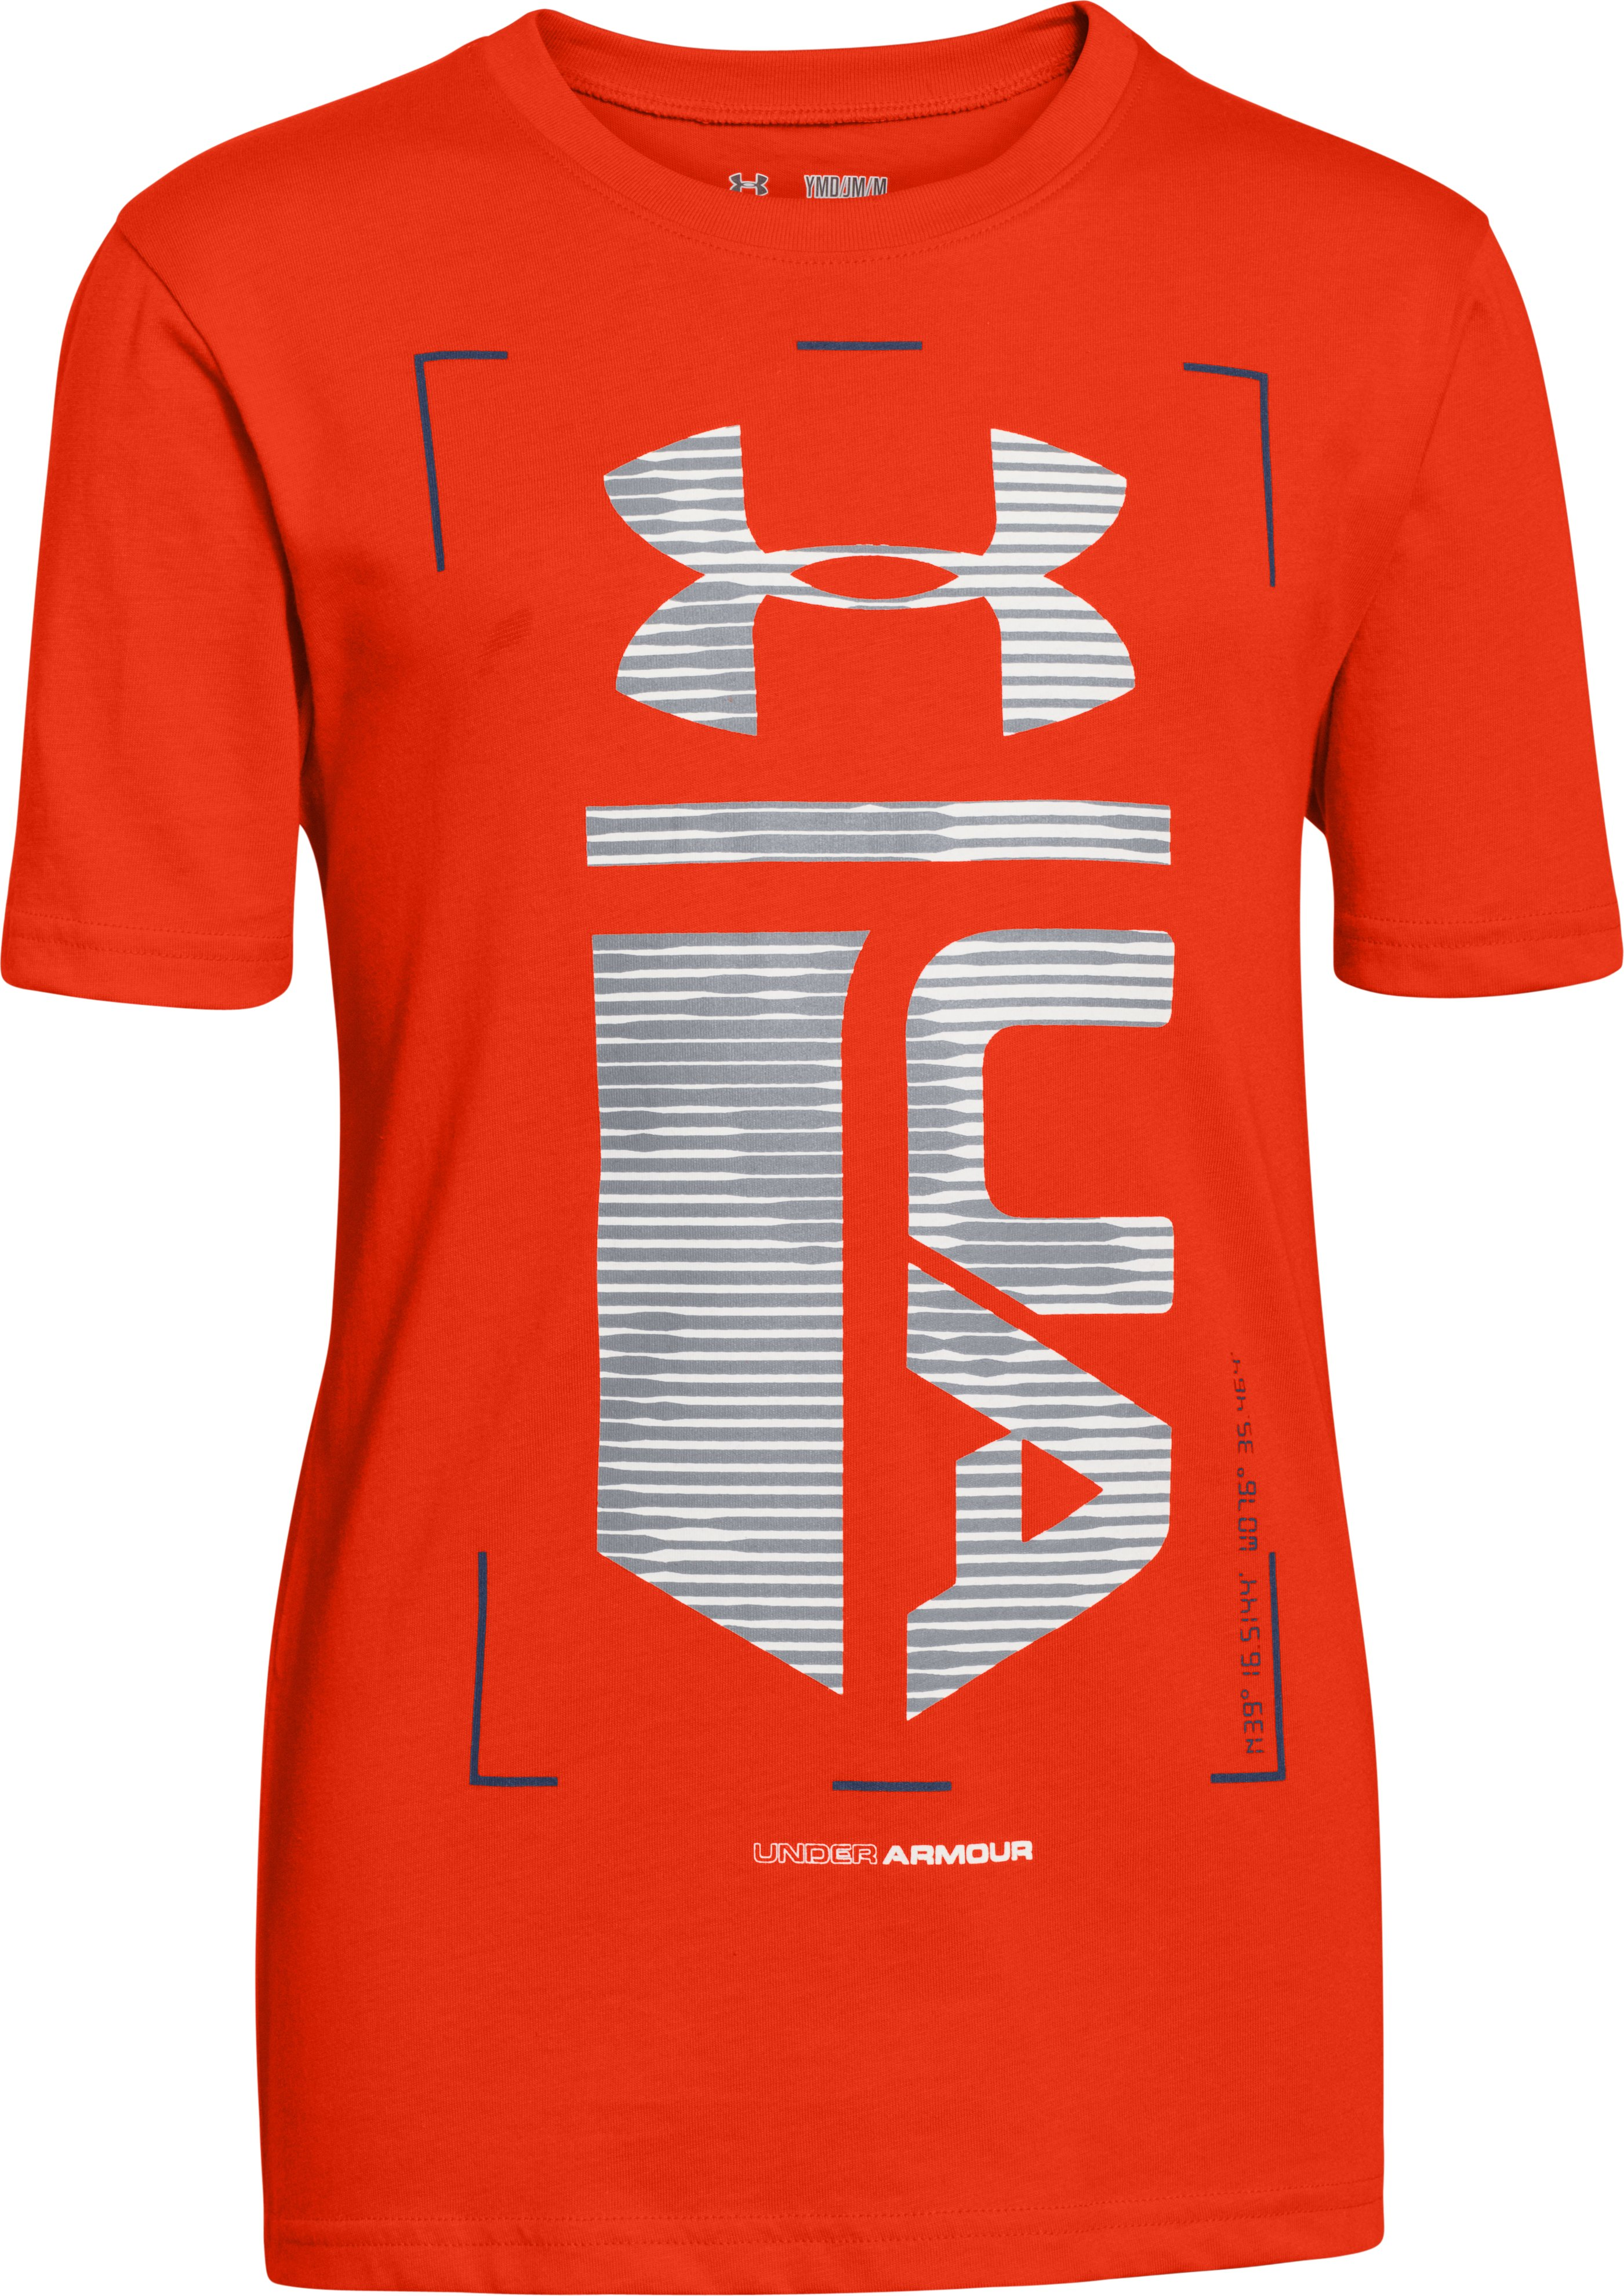 Boys' UA Double Time T-Shirt, Volcano, undefined